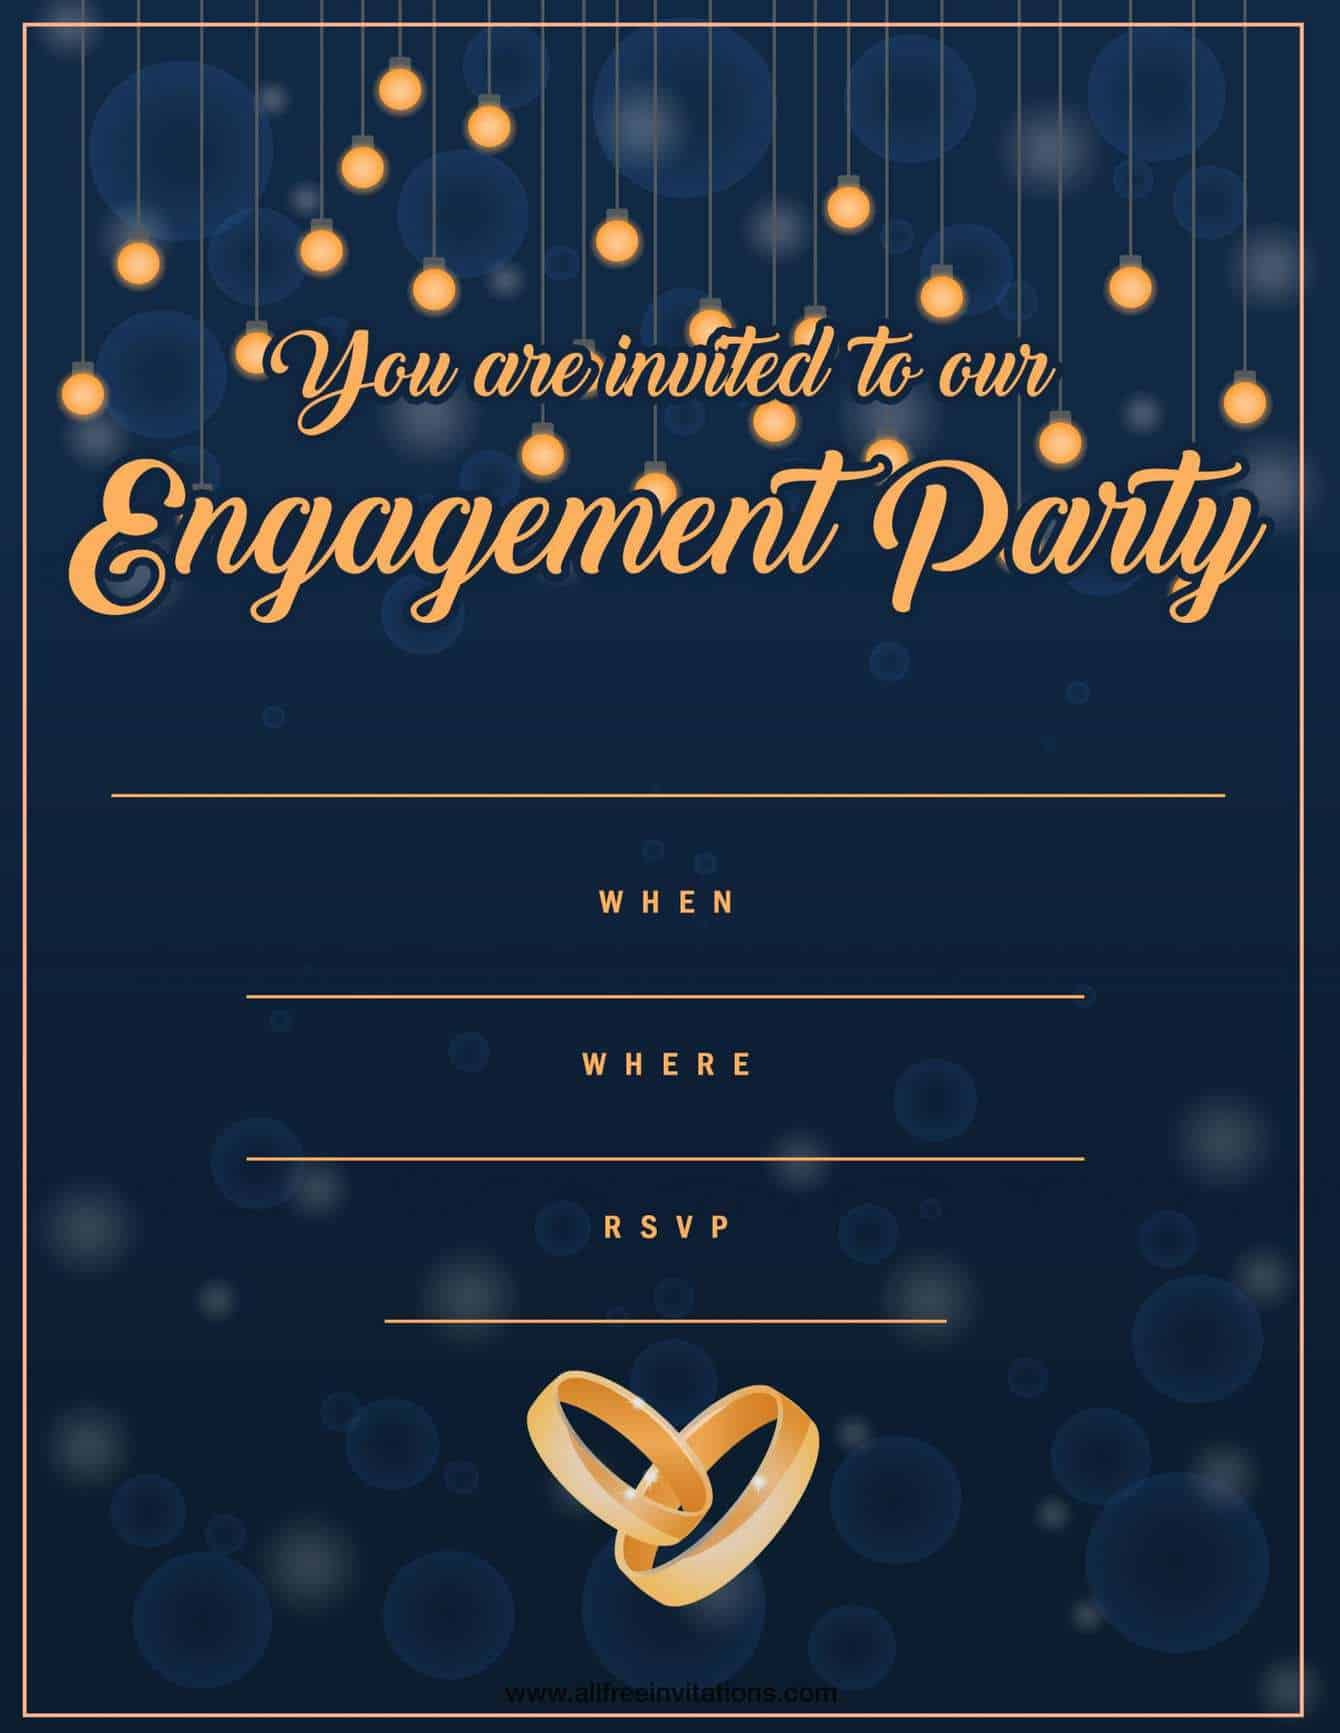 Free Engagement Party Invitations | Modern or Traditional